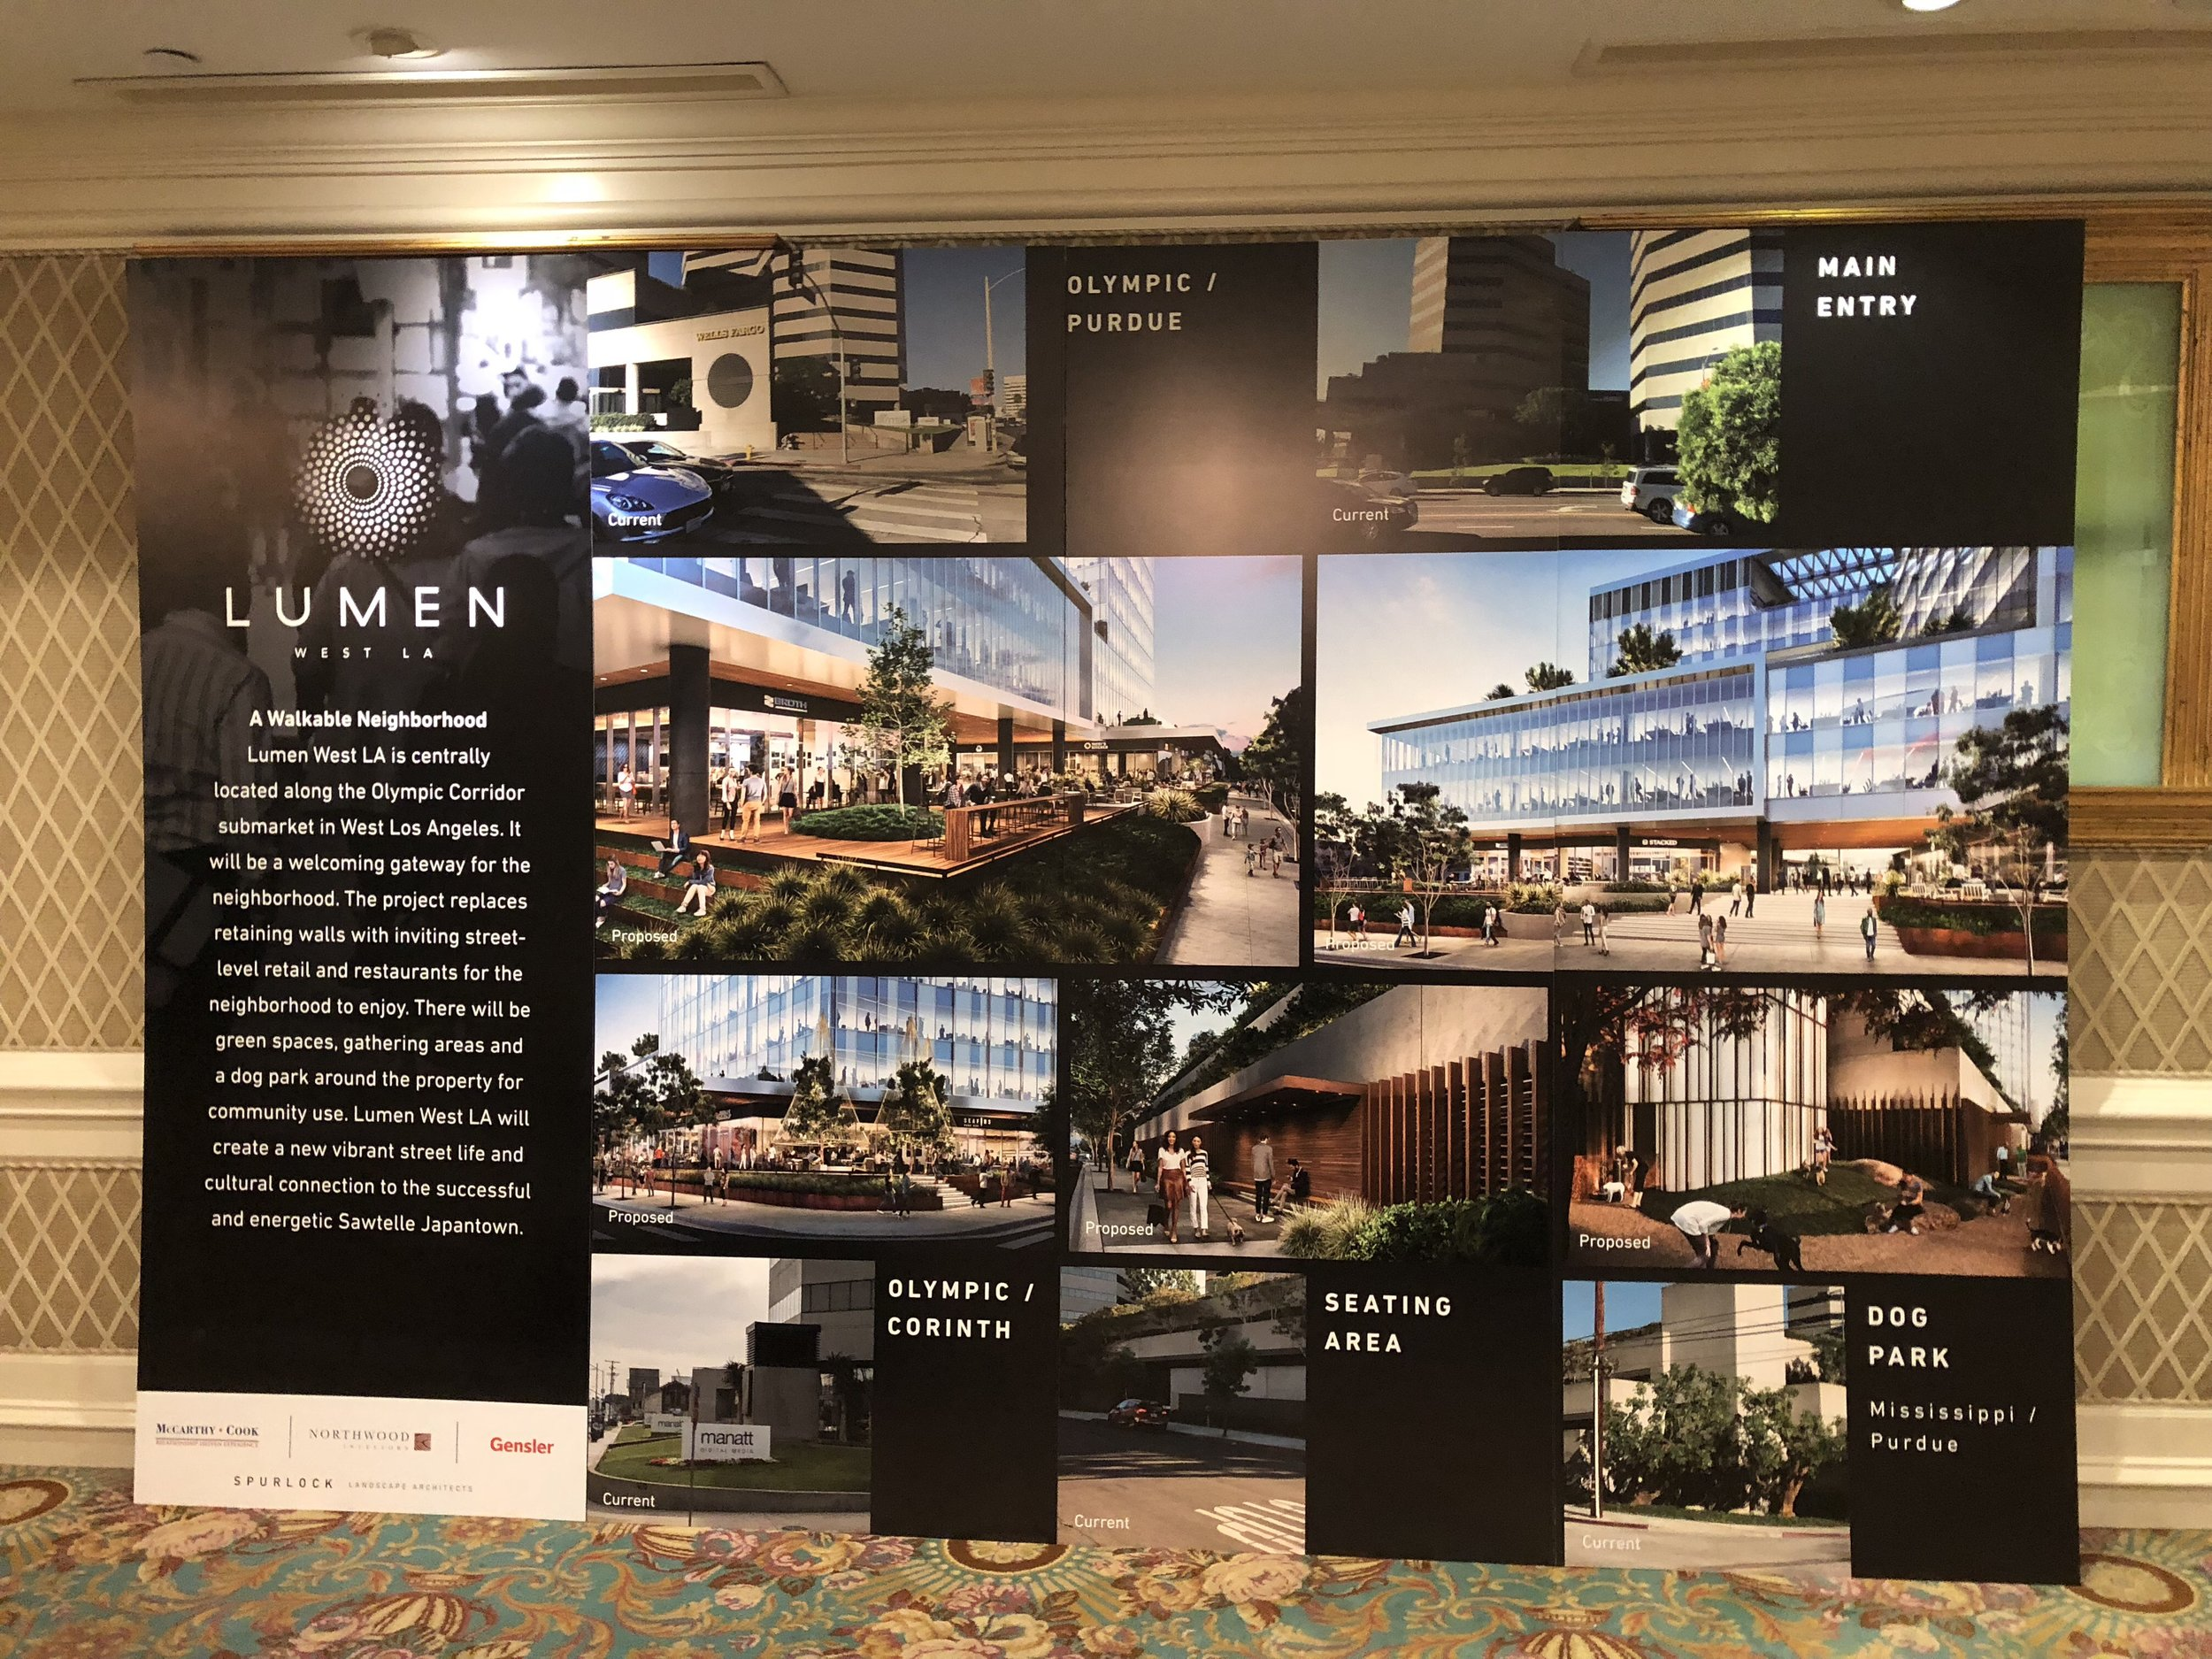 This photos shows the projected new ideas along with the existing areas.